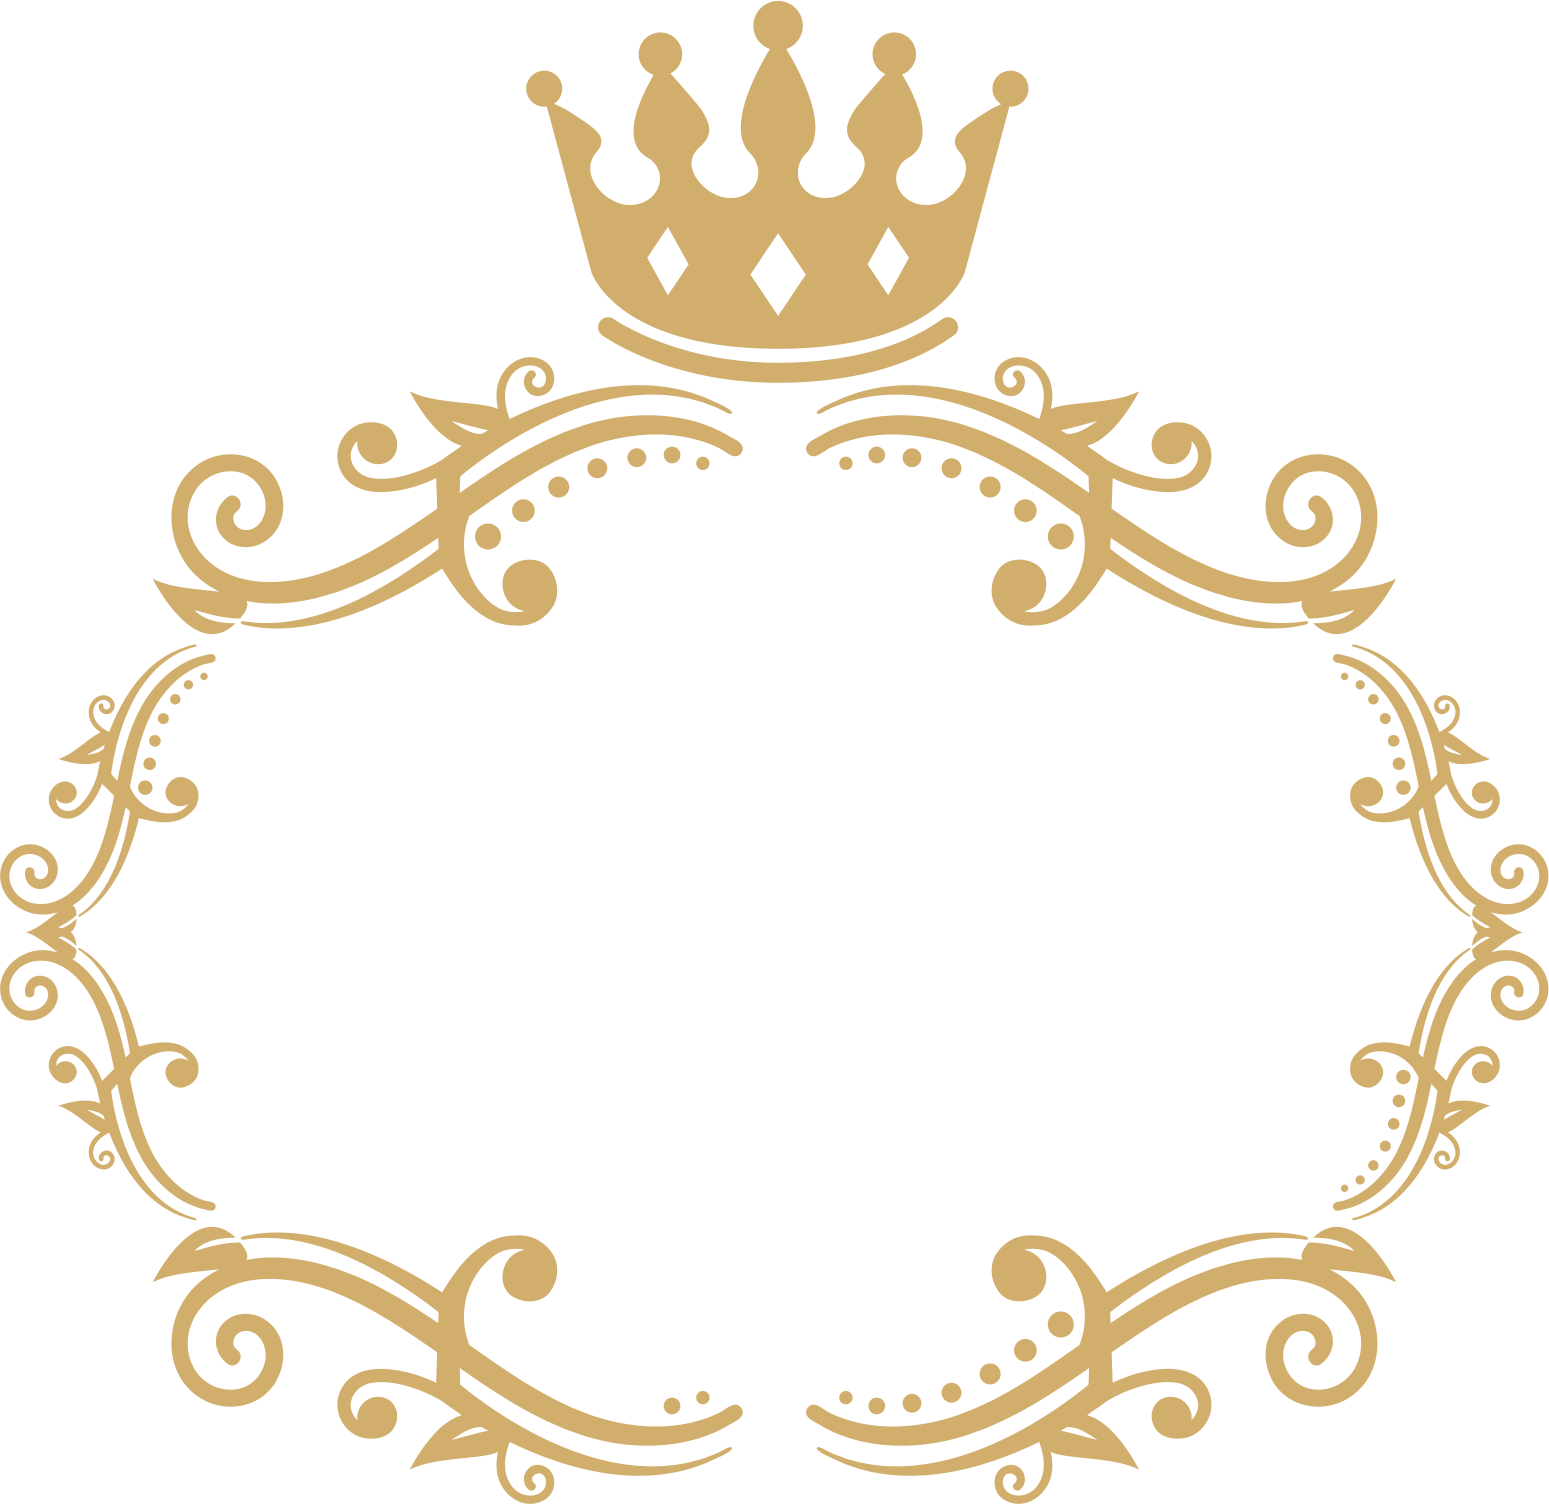 Crown fillagree clipart picture transparent download frame 3 | clipart | Pinterest | Cricut, Borders free and Cricut design picture transparent download